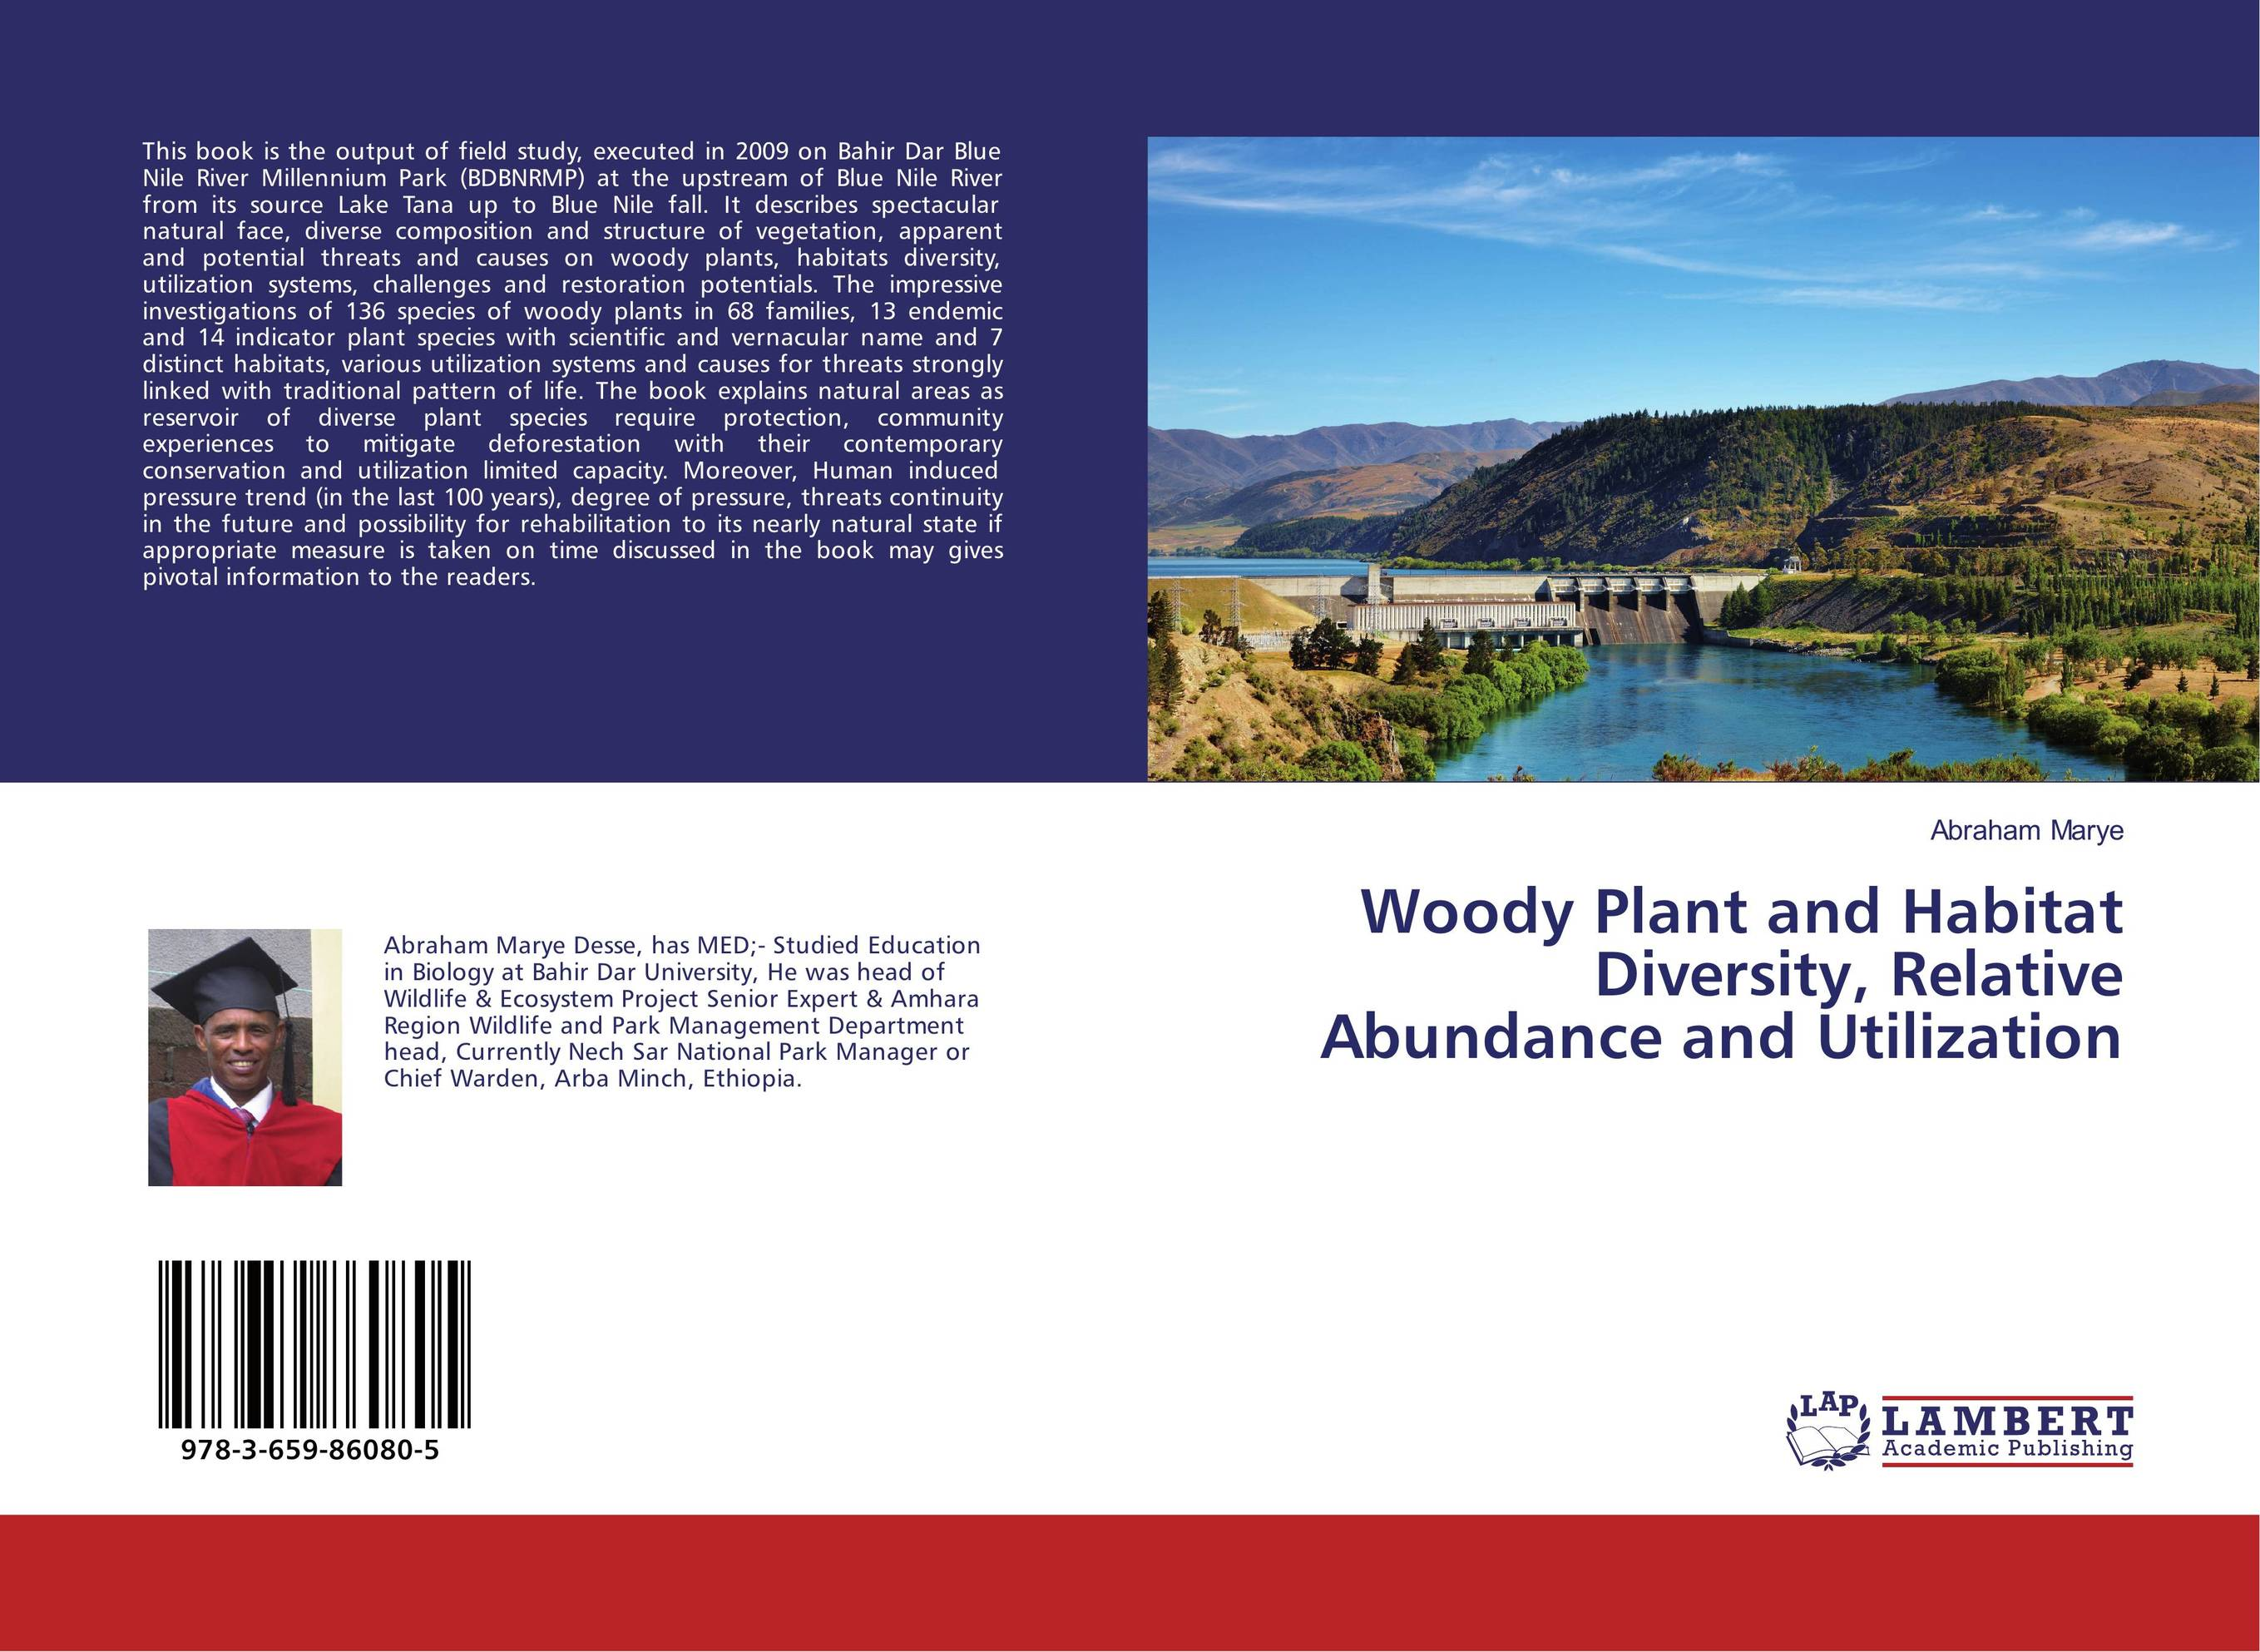 Woody Plant and Habitat Diversity, Relative Abundance and Utilization sadat khattab usama abdul raouf and tsutomu kodaki bio ethanol for future from woody biomass